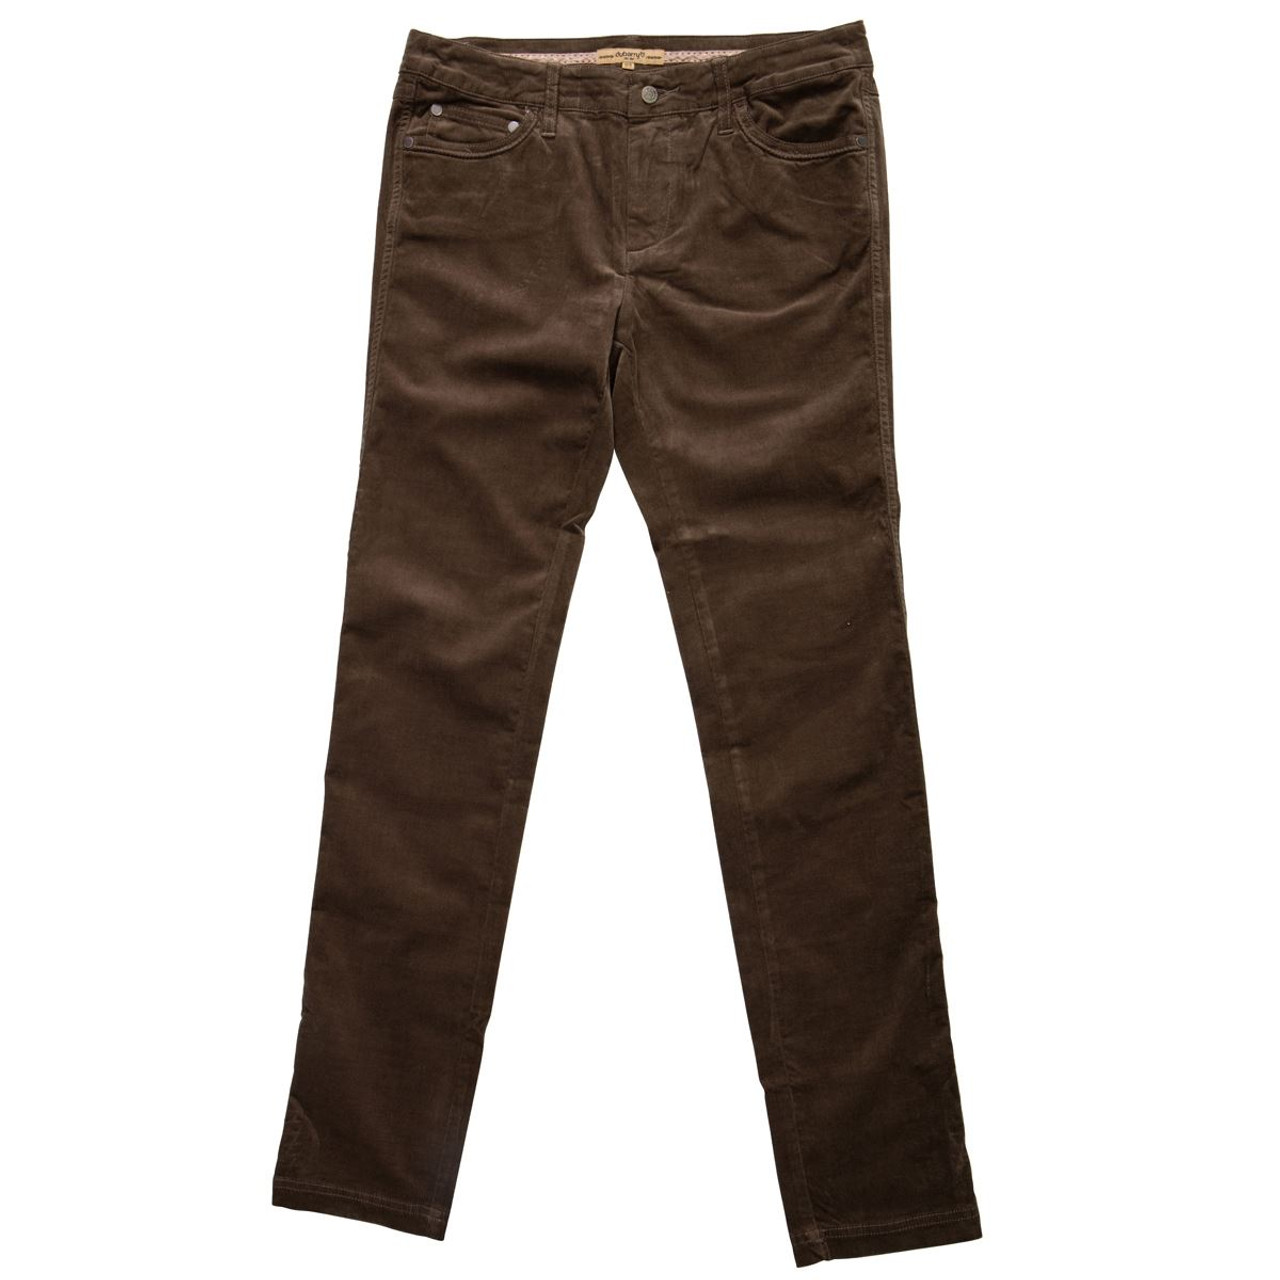 Dubarry Honeysuckle Jeans in Mocha